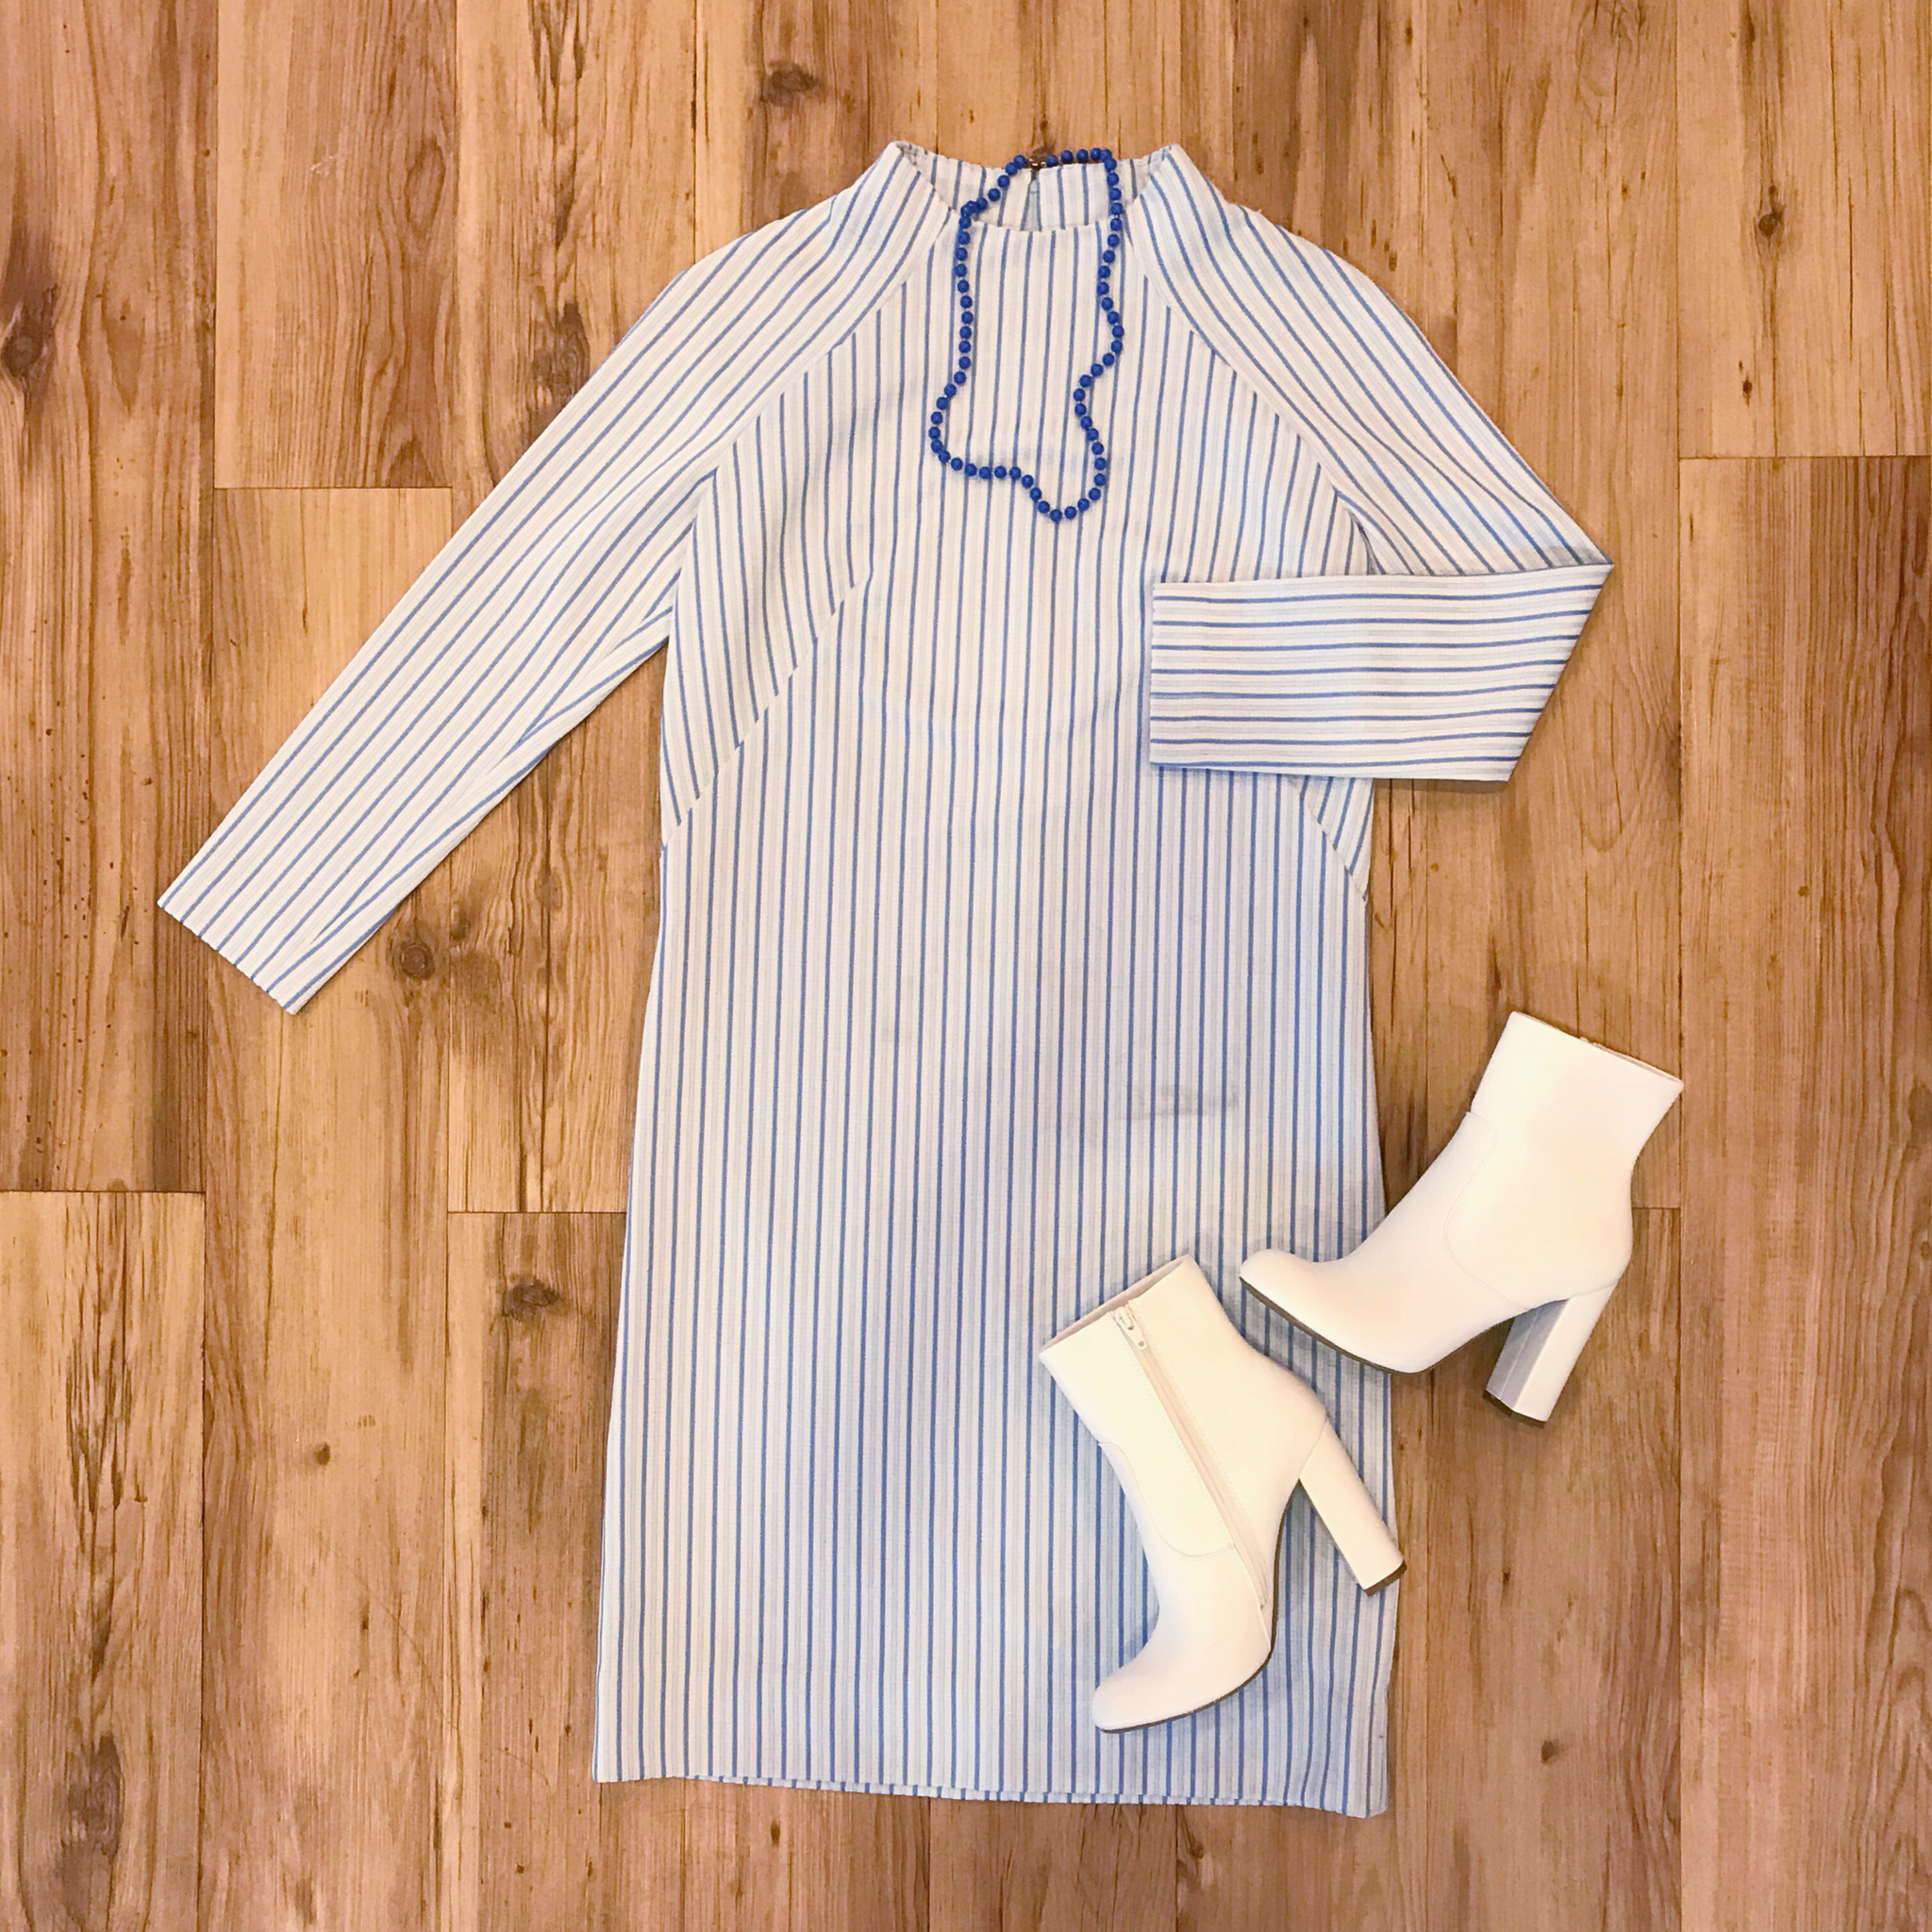 1960s Shades of Blue Striped Shift Dress 00017